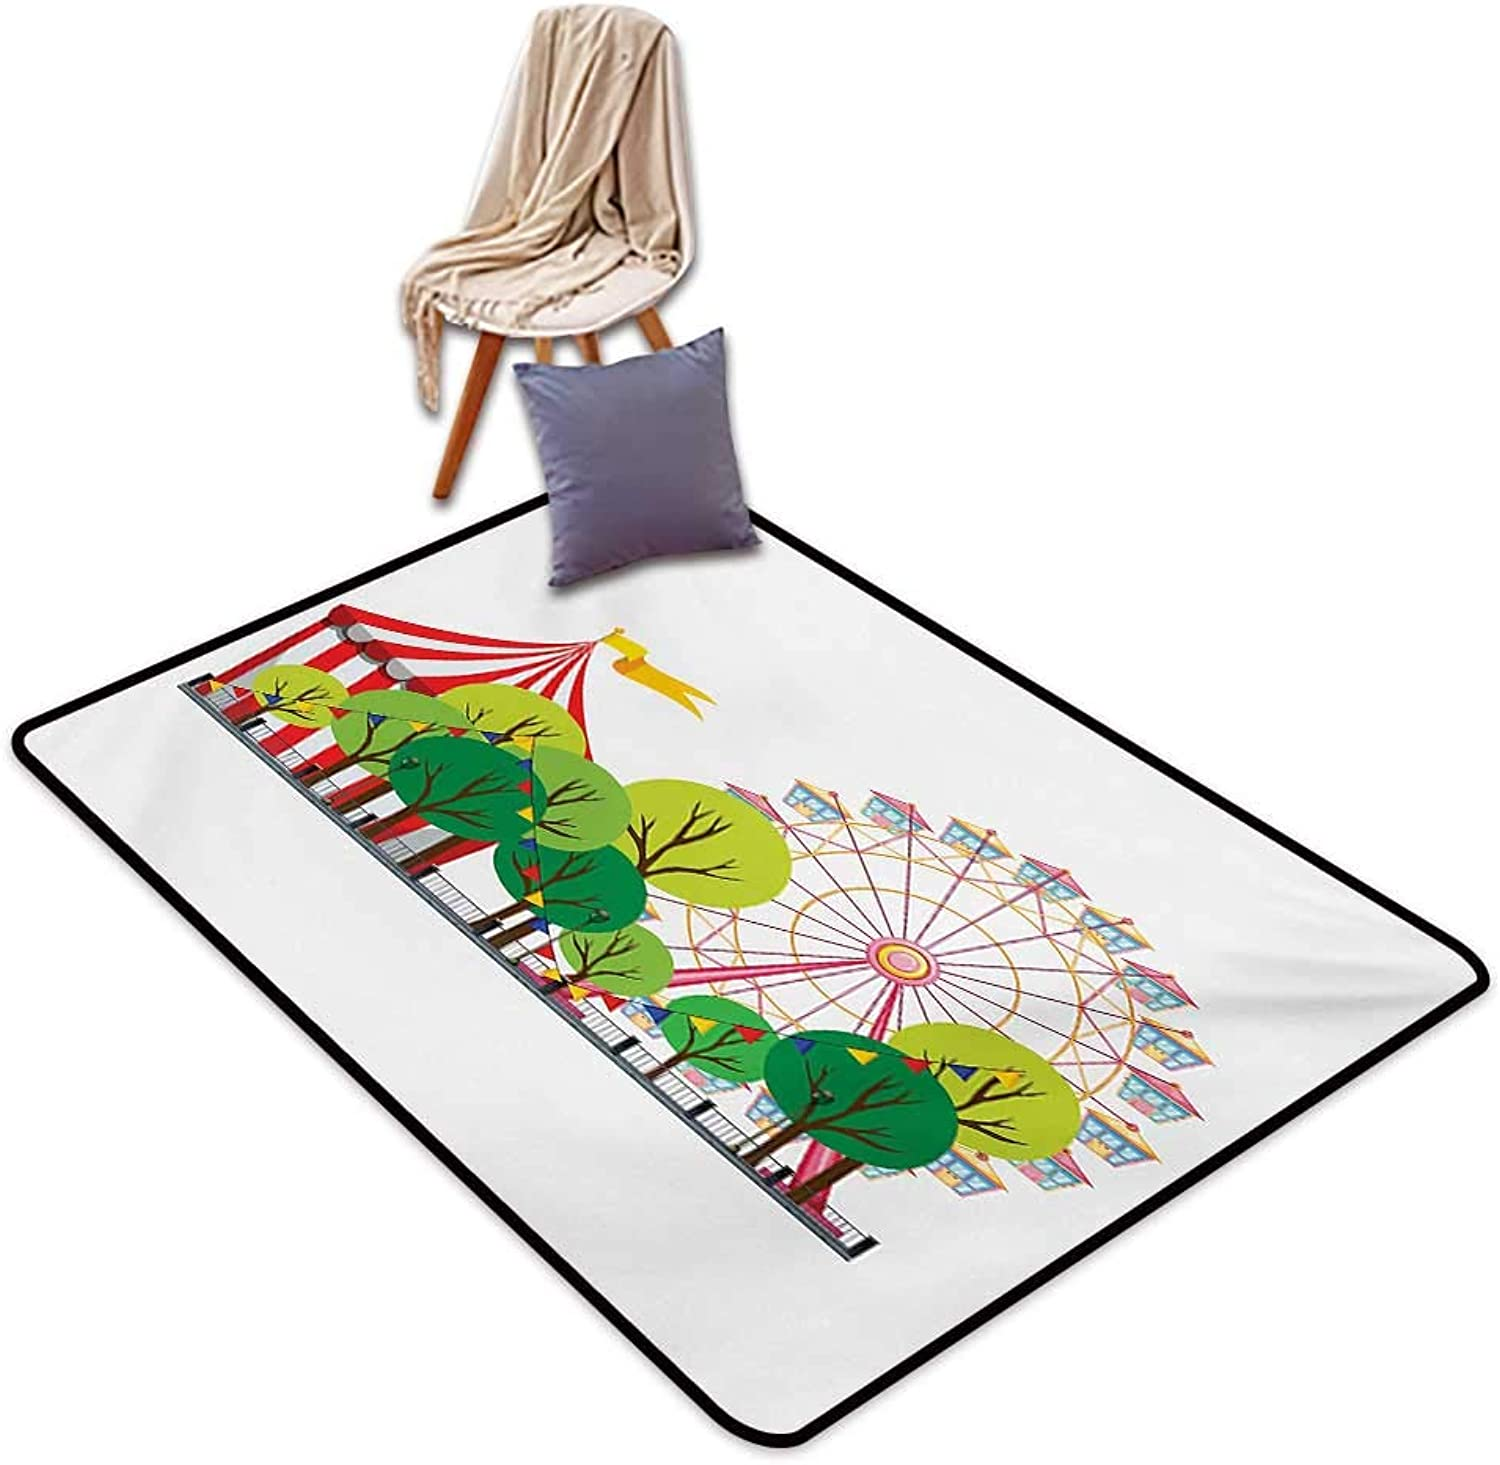 Circus Non-Slip Door mat Circus Carnival Scene with Ferris Wheel and Tree Images Cool Fun Park Artistic Show Water Absorption, Anti-Skid and Oil Proof 48  Wx59 L Multicolor